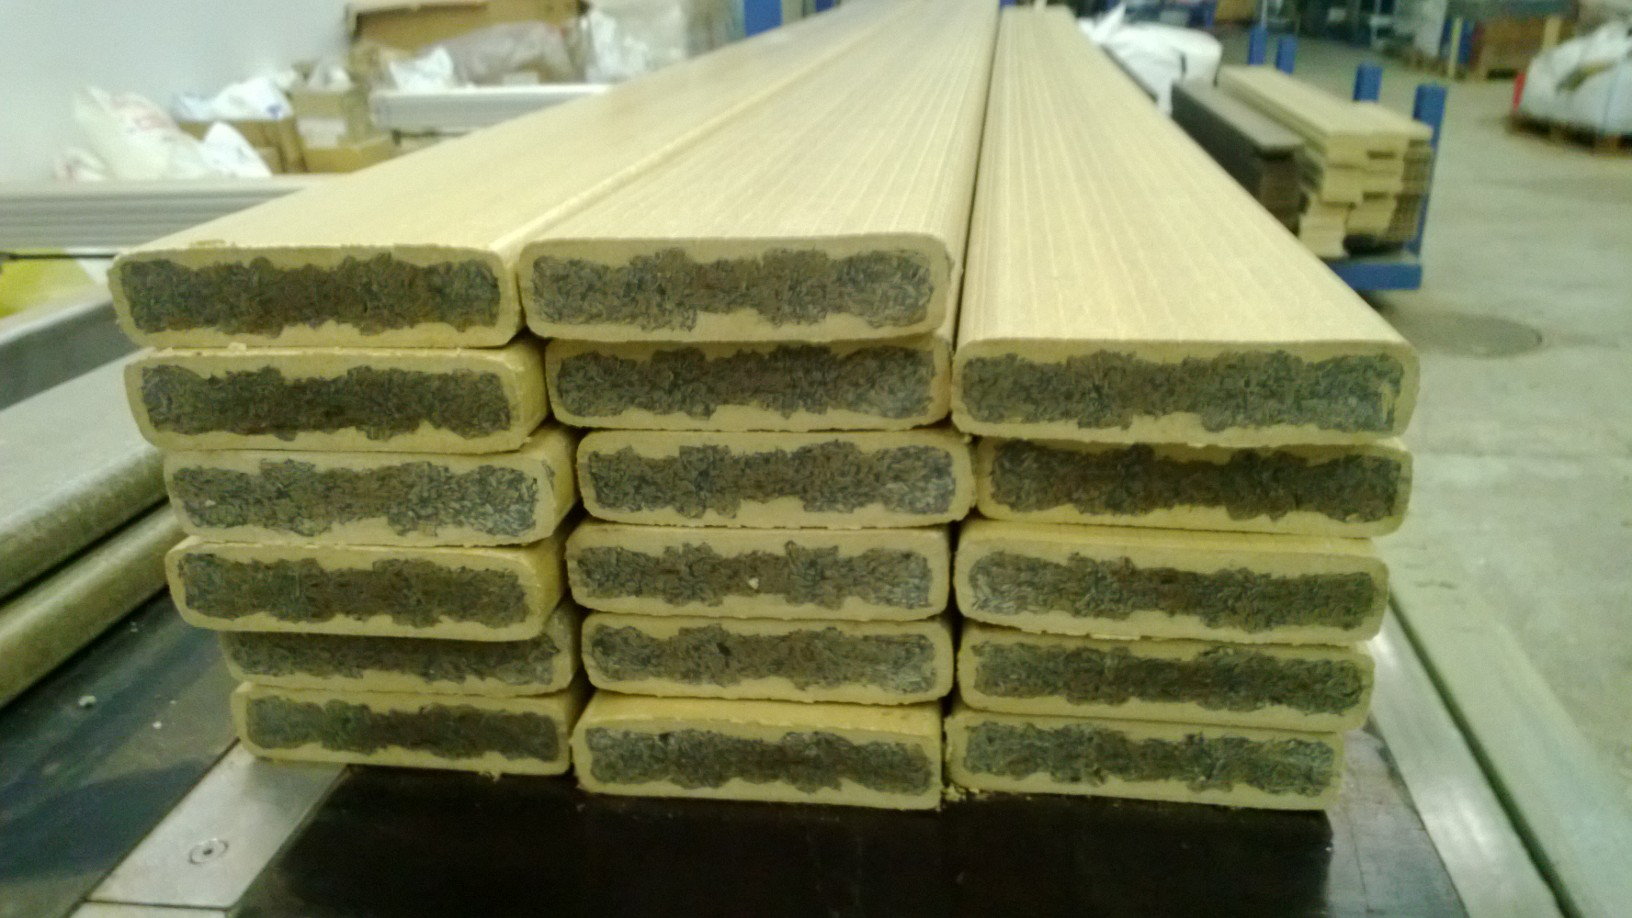 Multilayer WPC-decking boards using mixed color recycled plastics at WPC-core layer